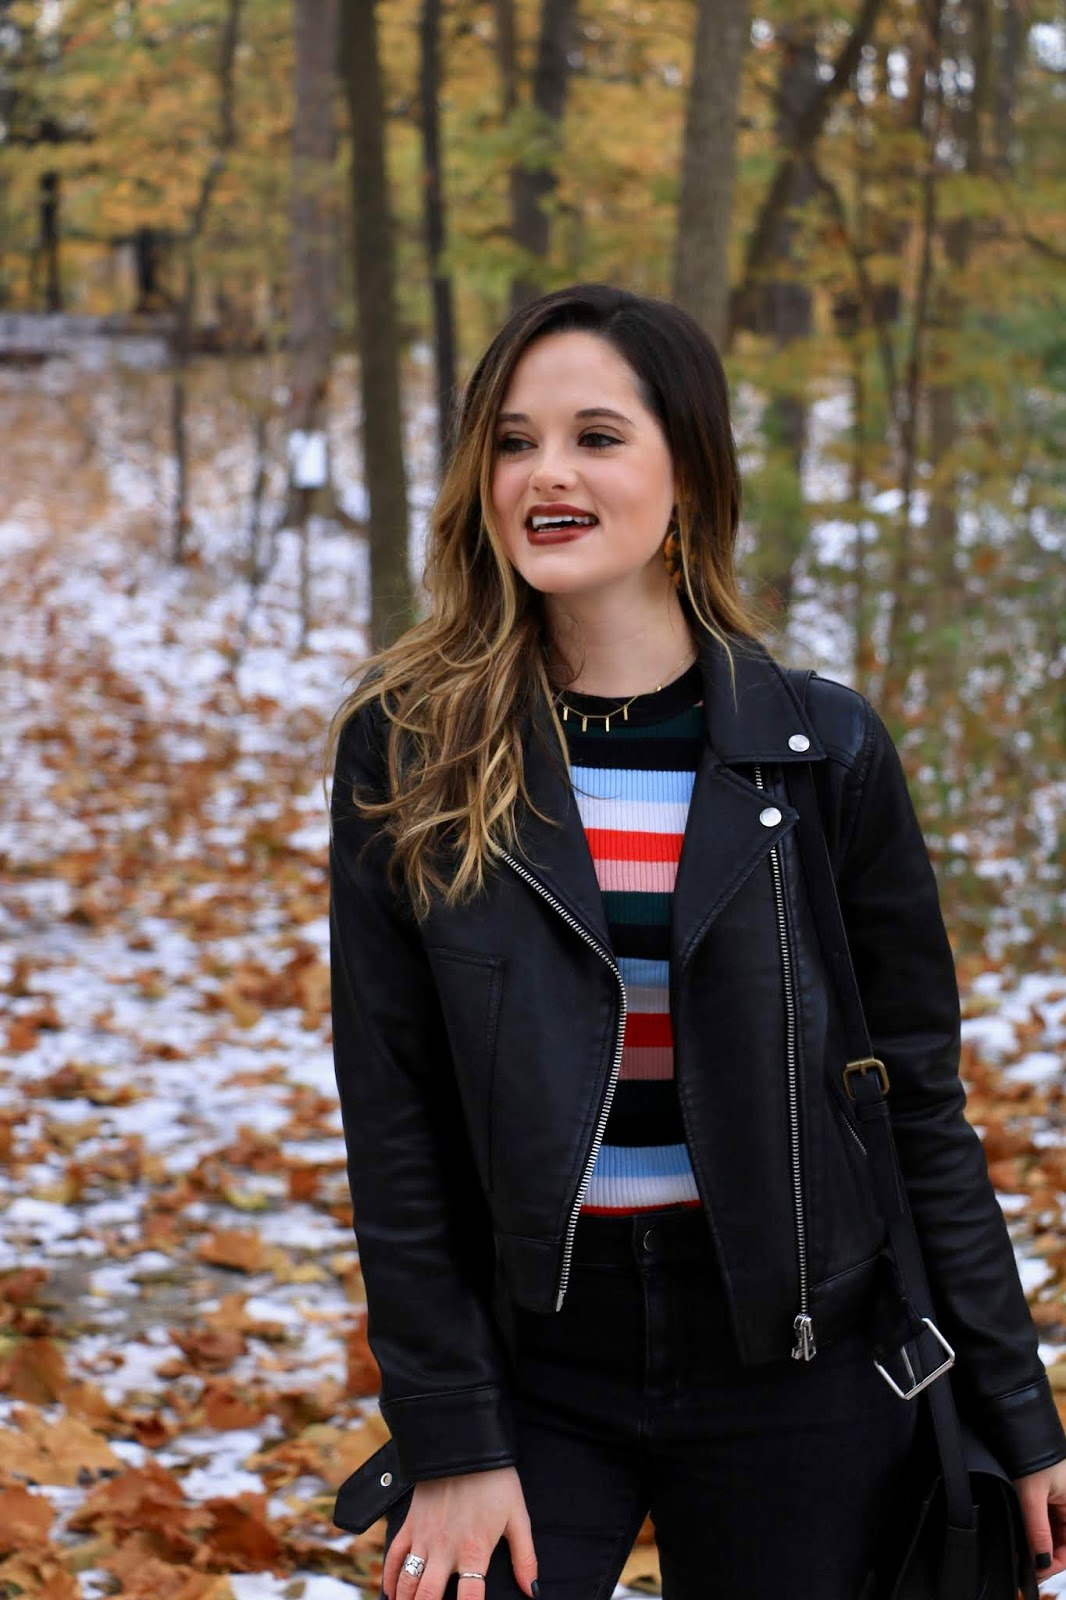 Nyc fashion blogger Kathleen Harper wearing a leather jacket from Topshop.